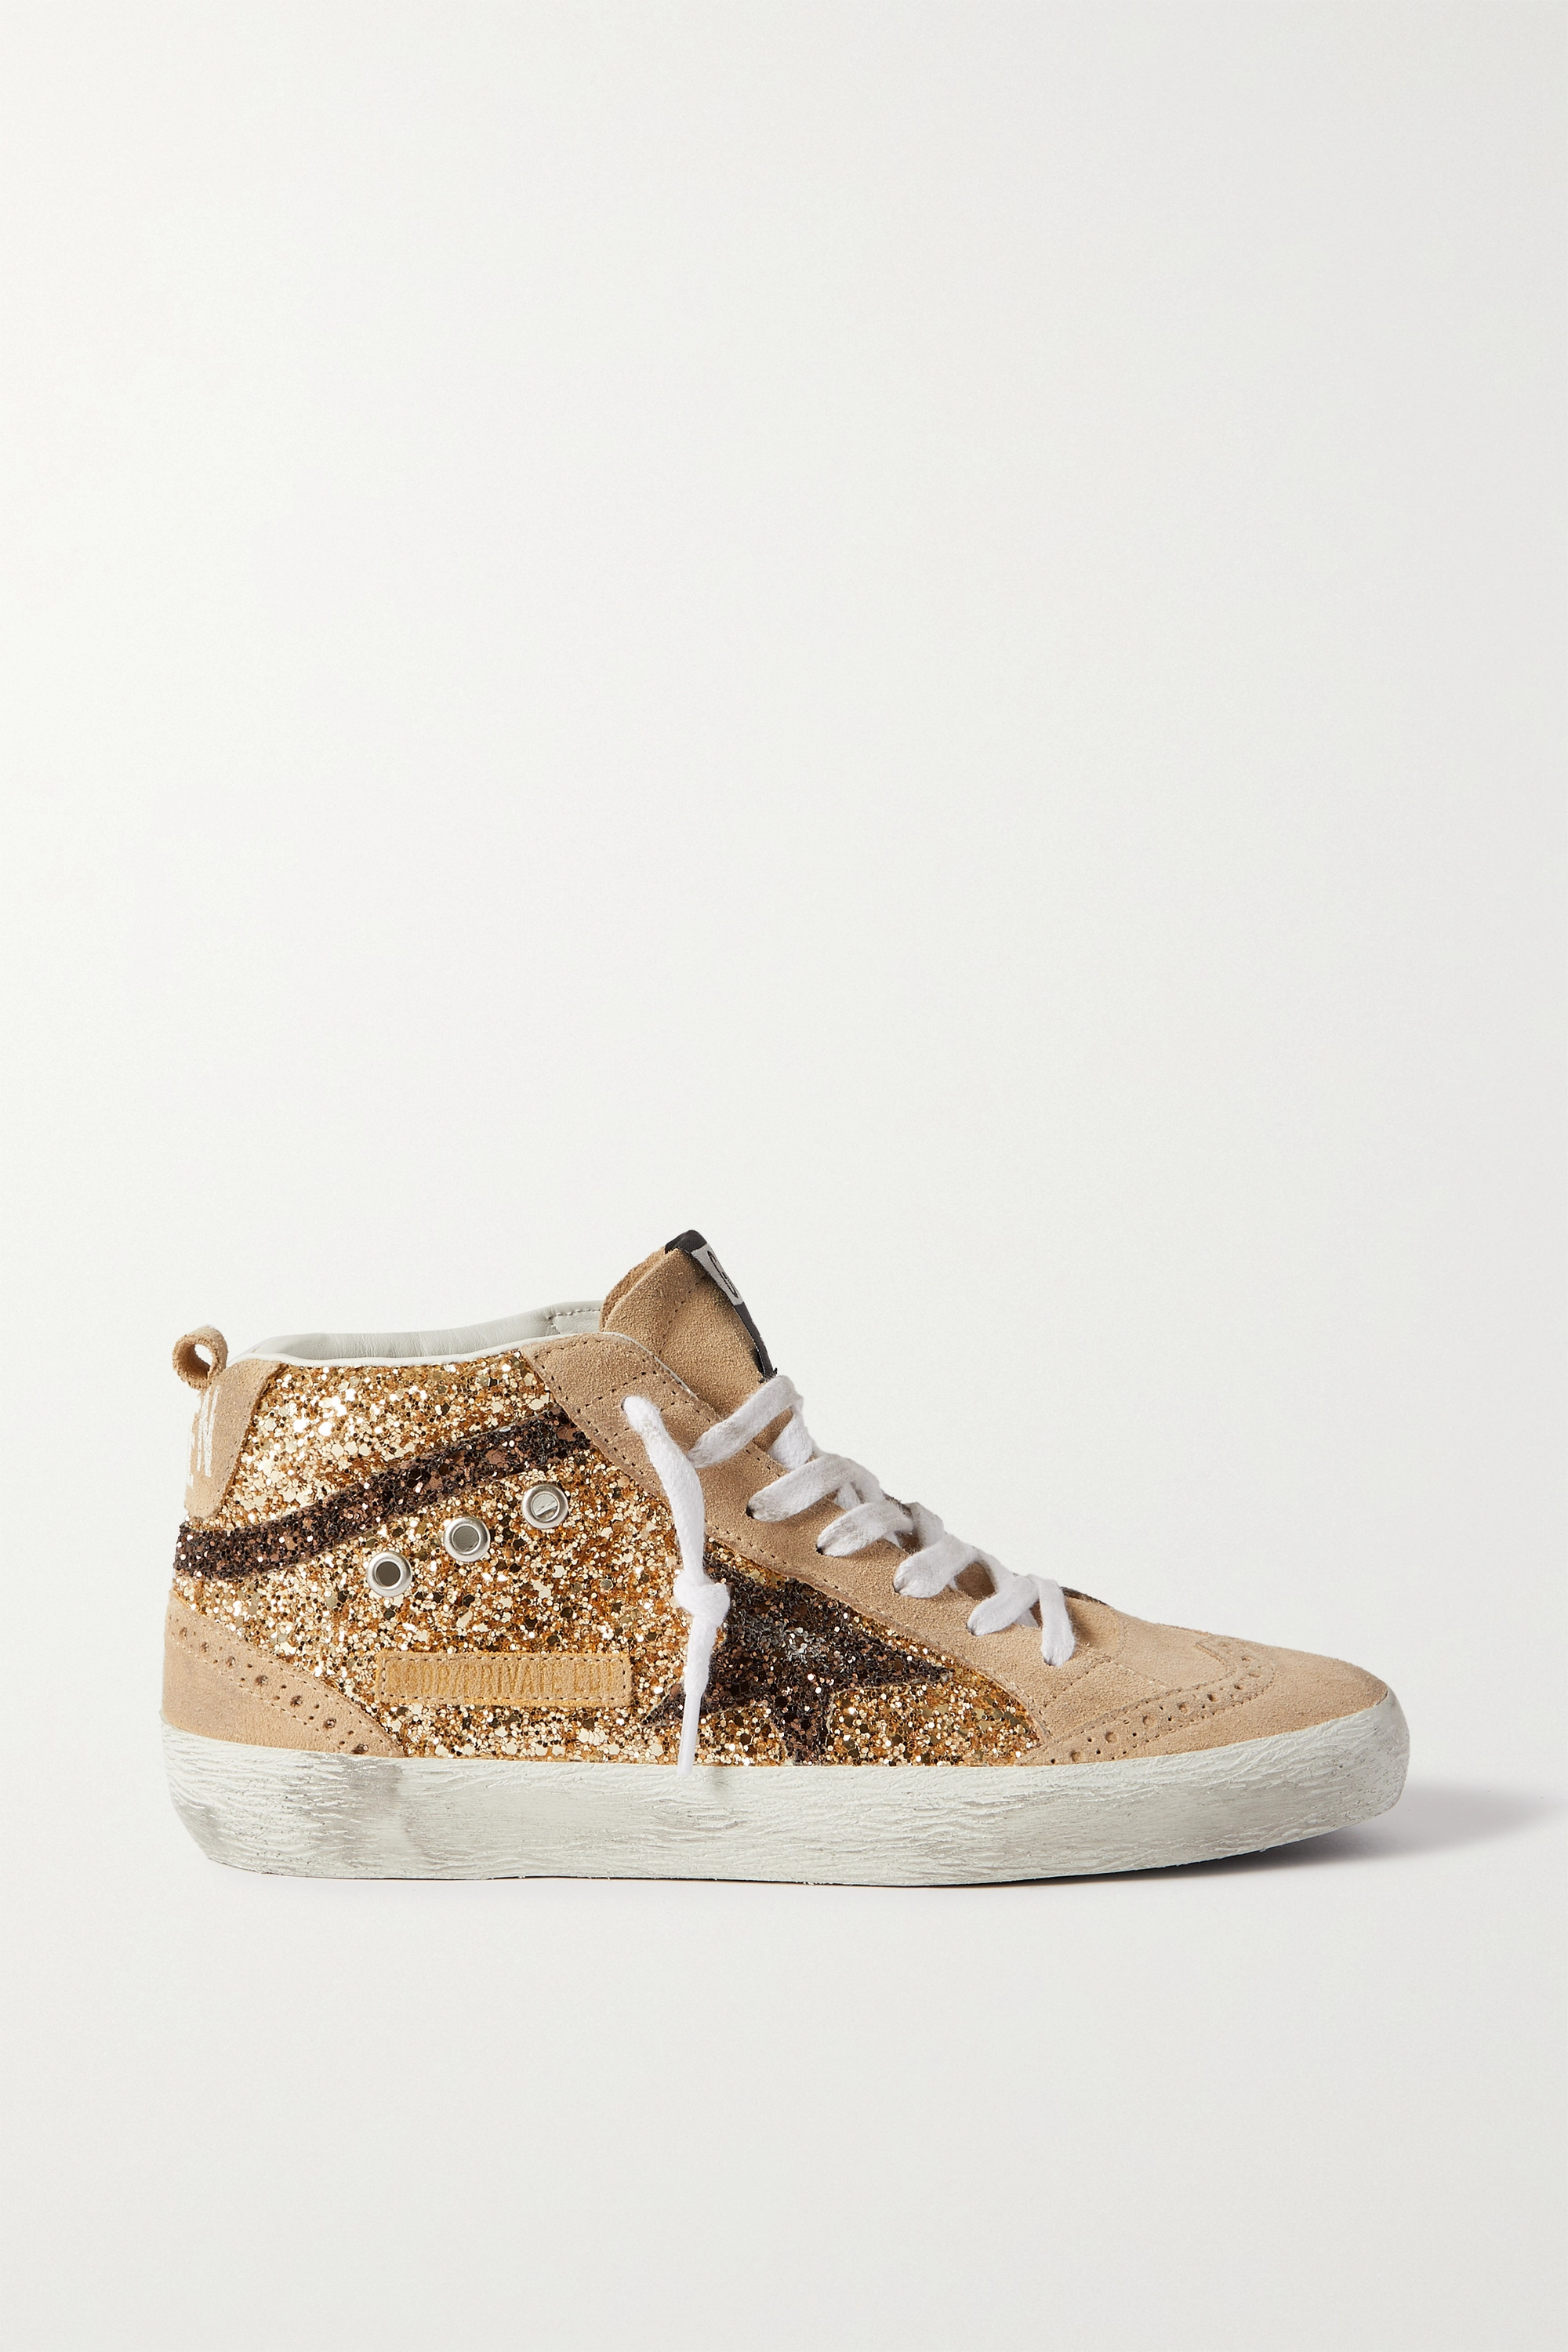 Golden Goose Midstar glittered distressed suede high-top sneakers